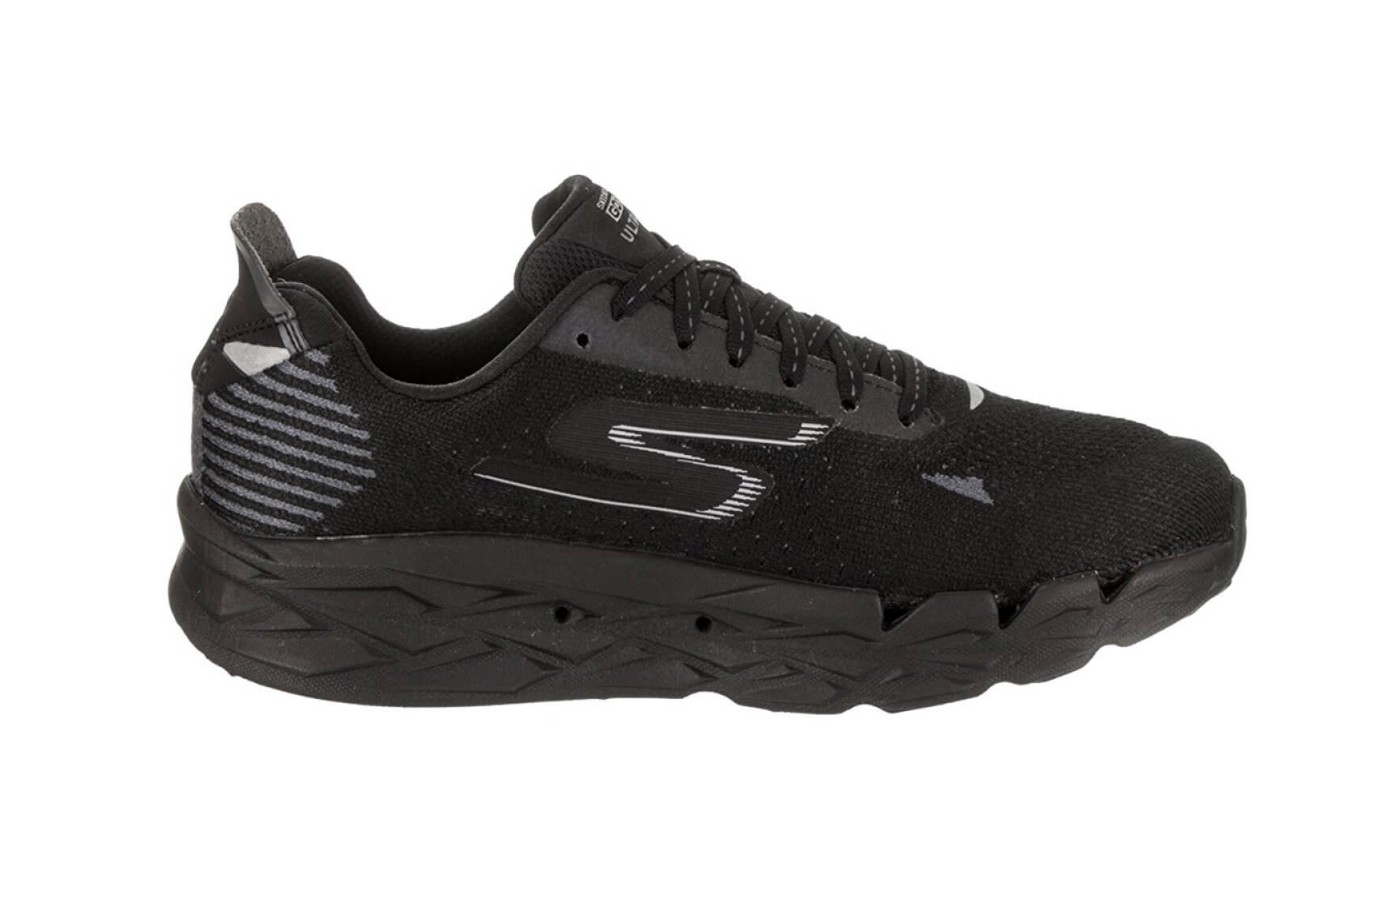 Skechers GO RUN ULTRA ROAD 2 Running Shoes